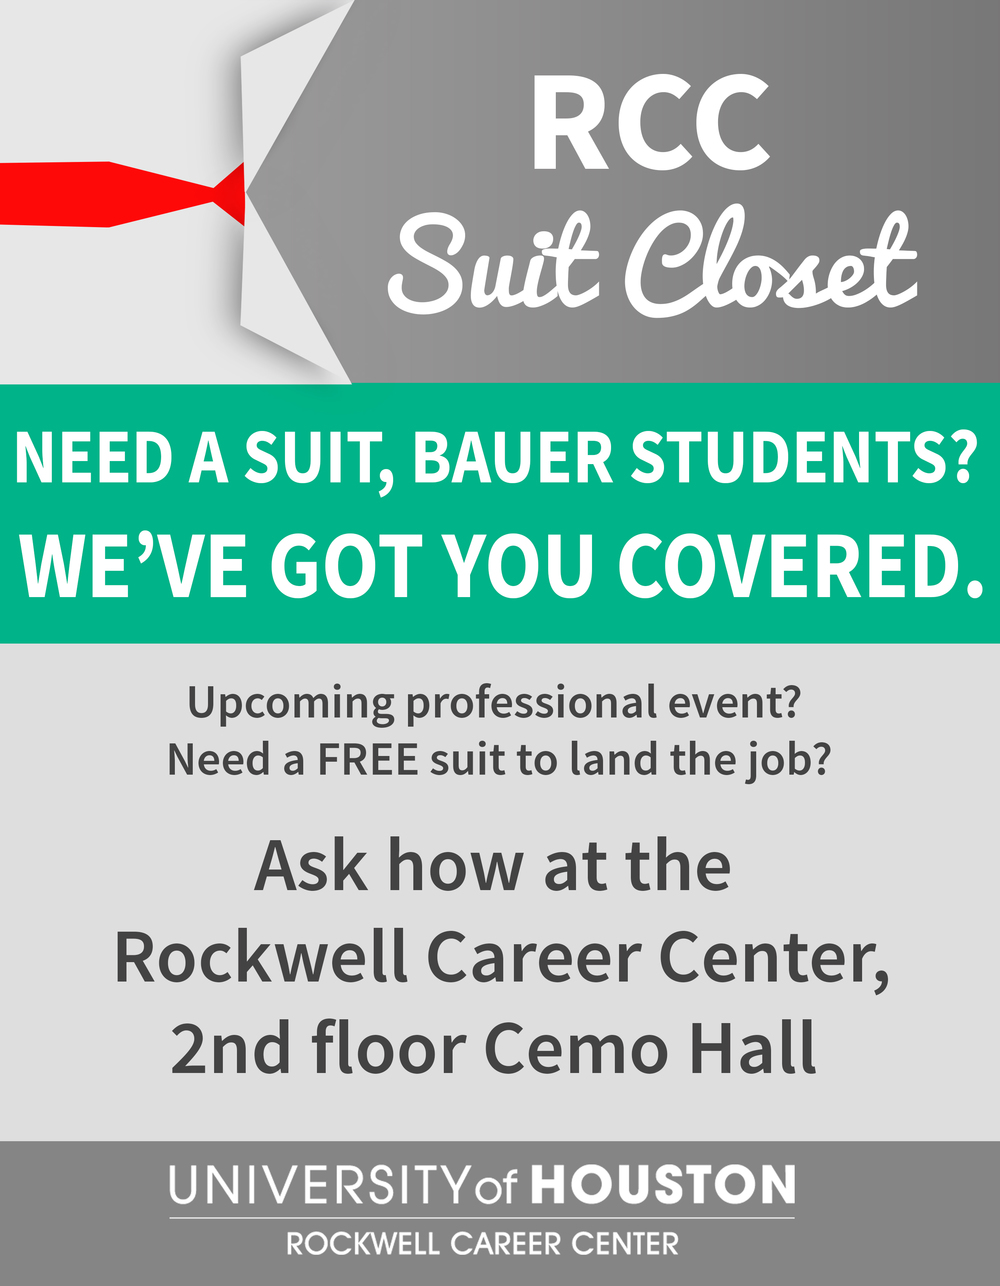 RCC Suit closet final flyer.jpg